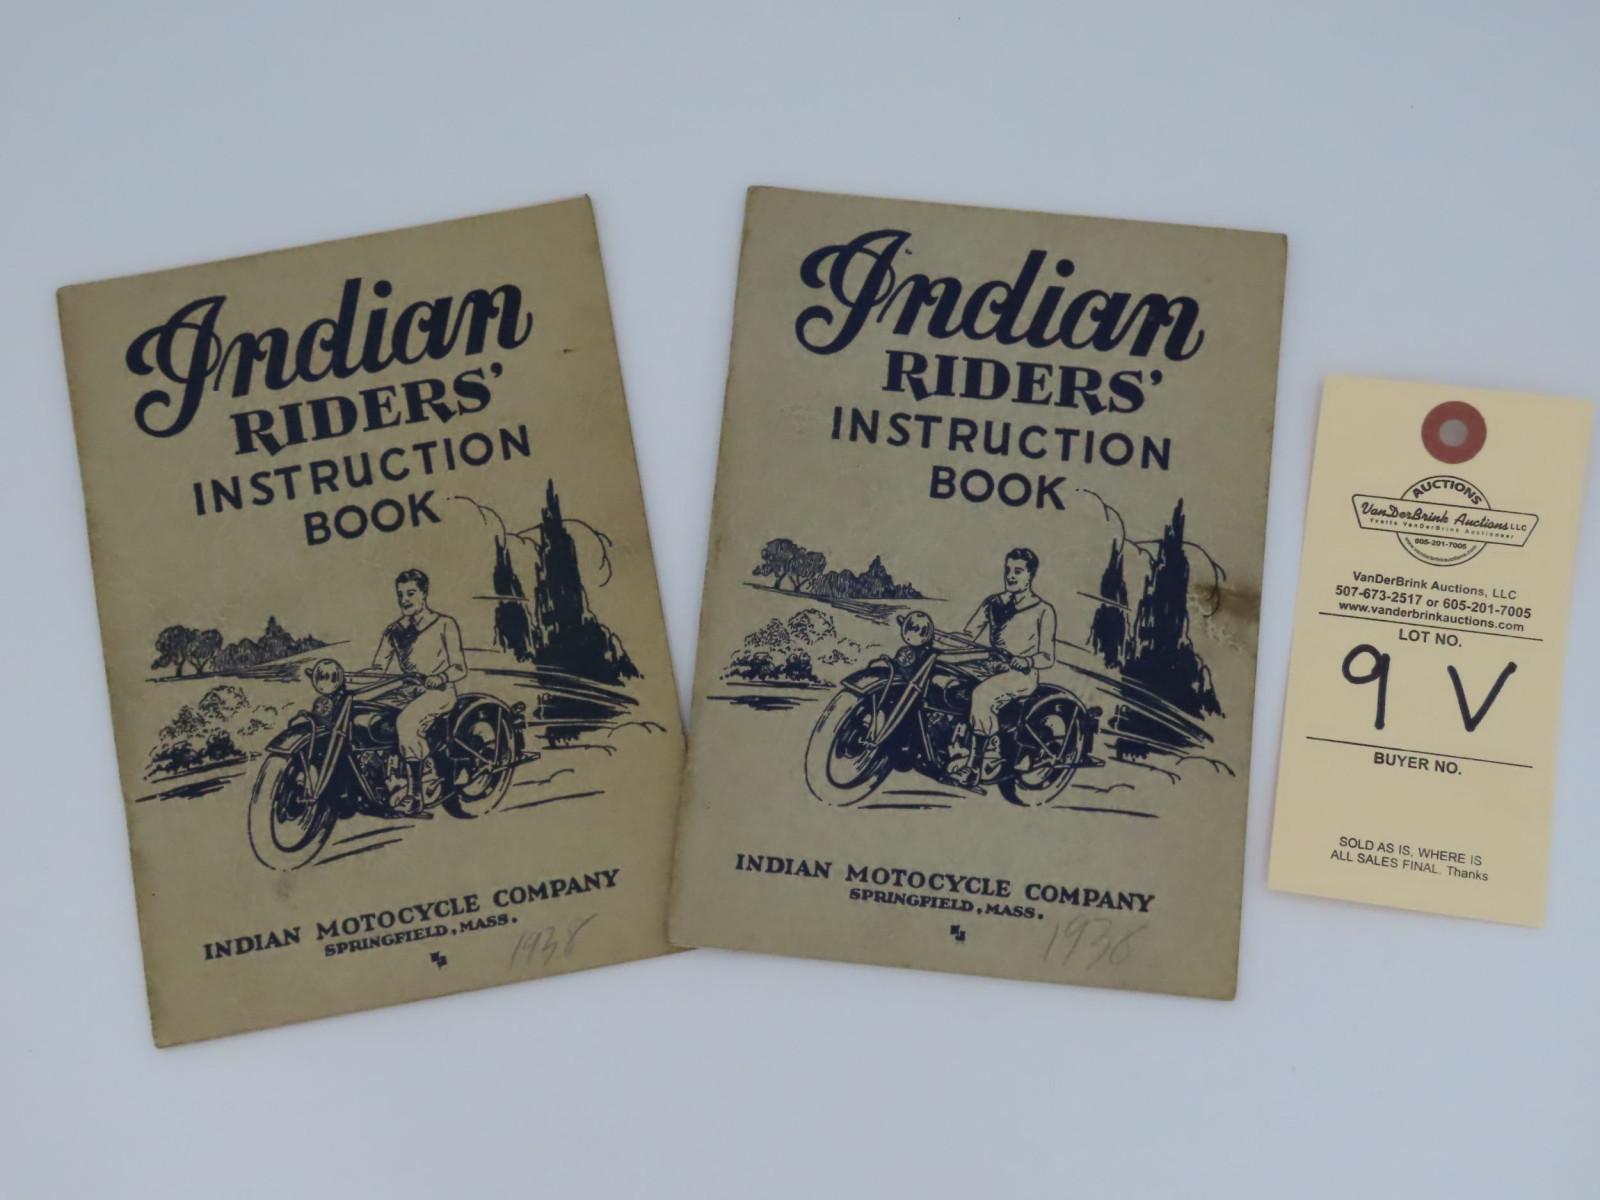 1938 Indian Riders' Instruction Book - Image 1